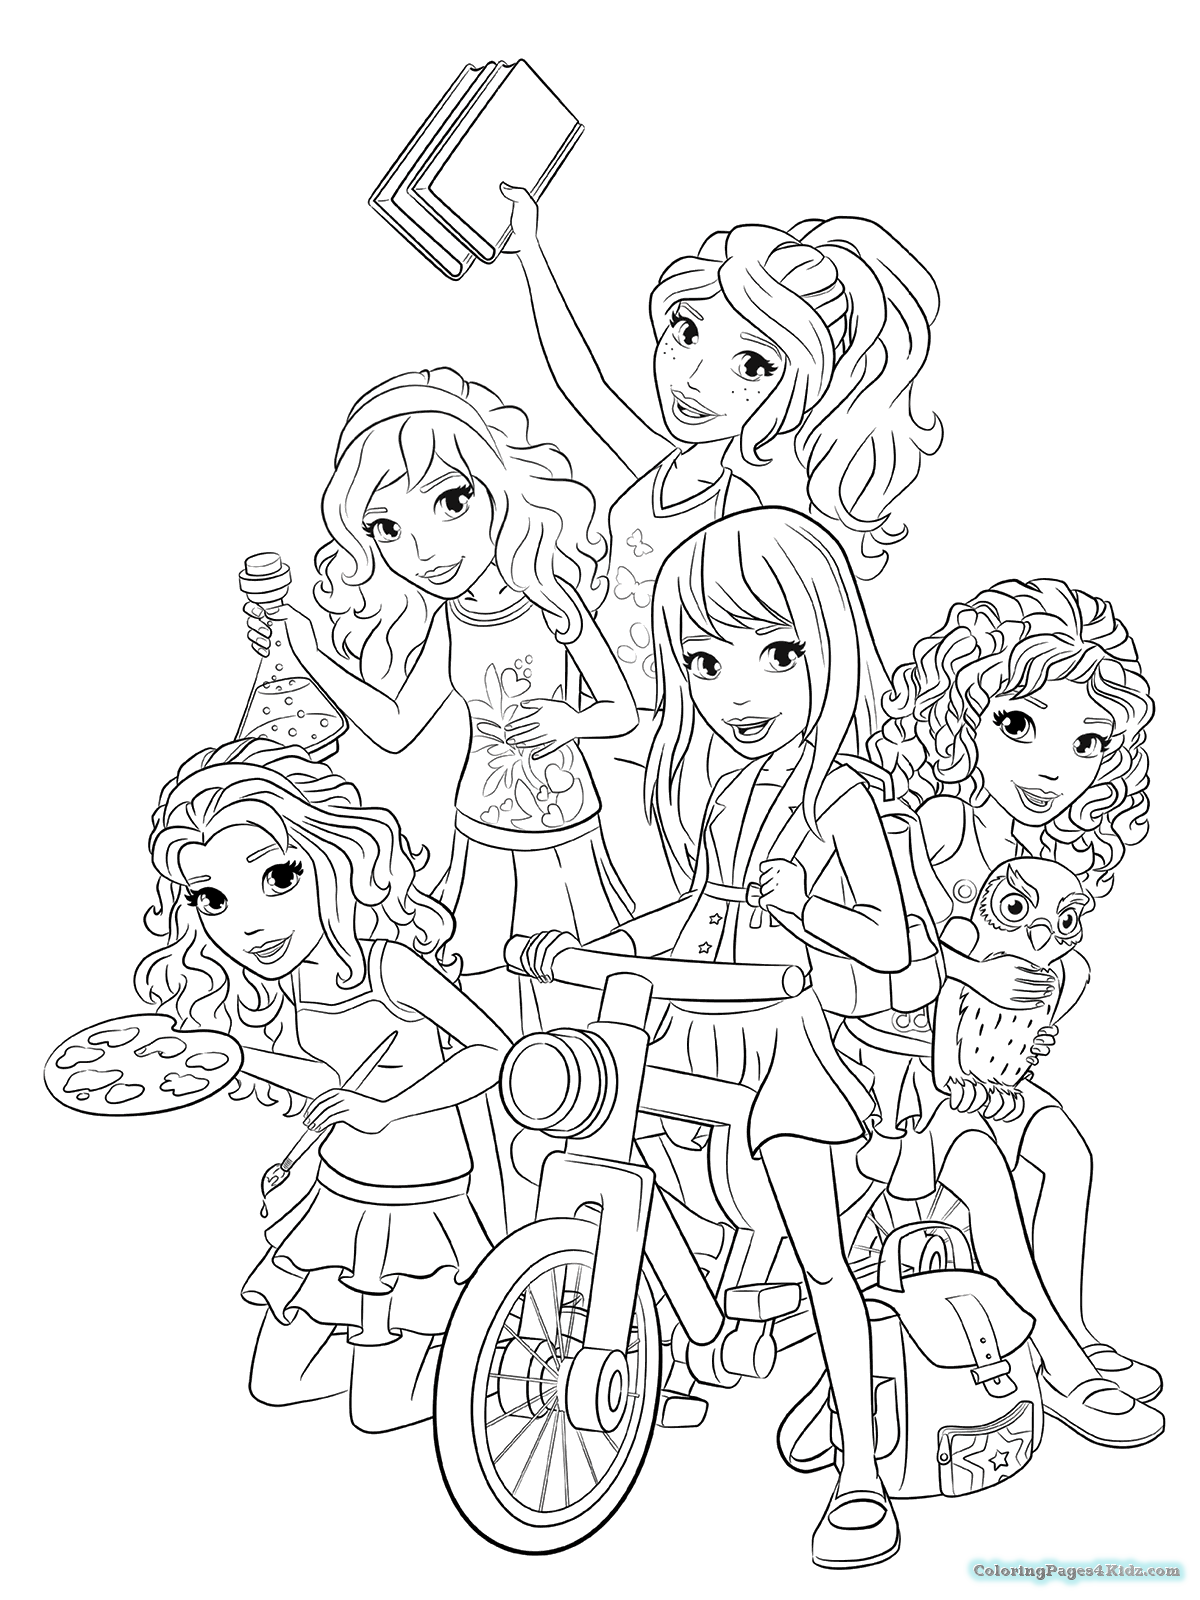 coloring pages of lego friends lego friends coloring pages childlifeme lego friends coloring friends lego of pages